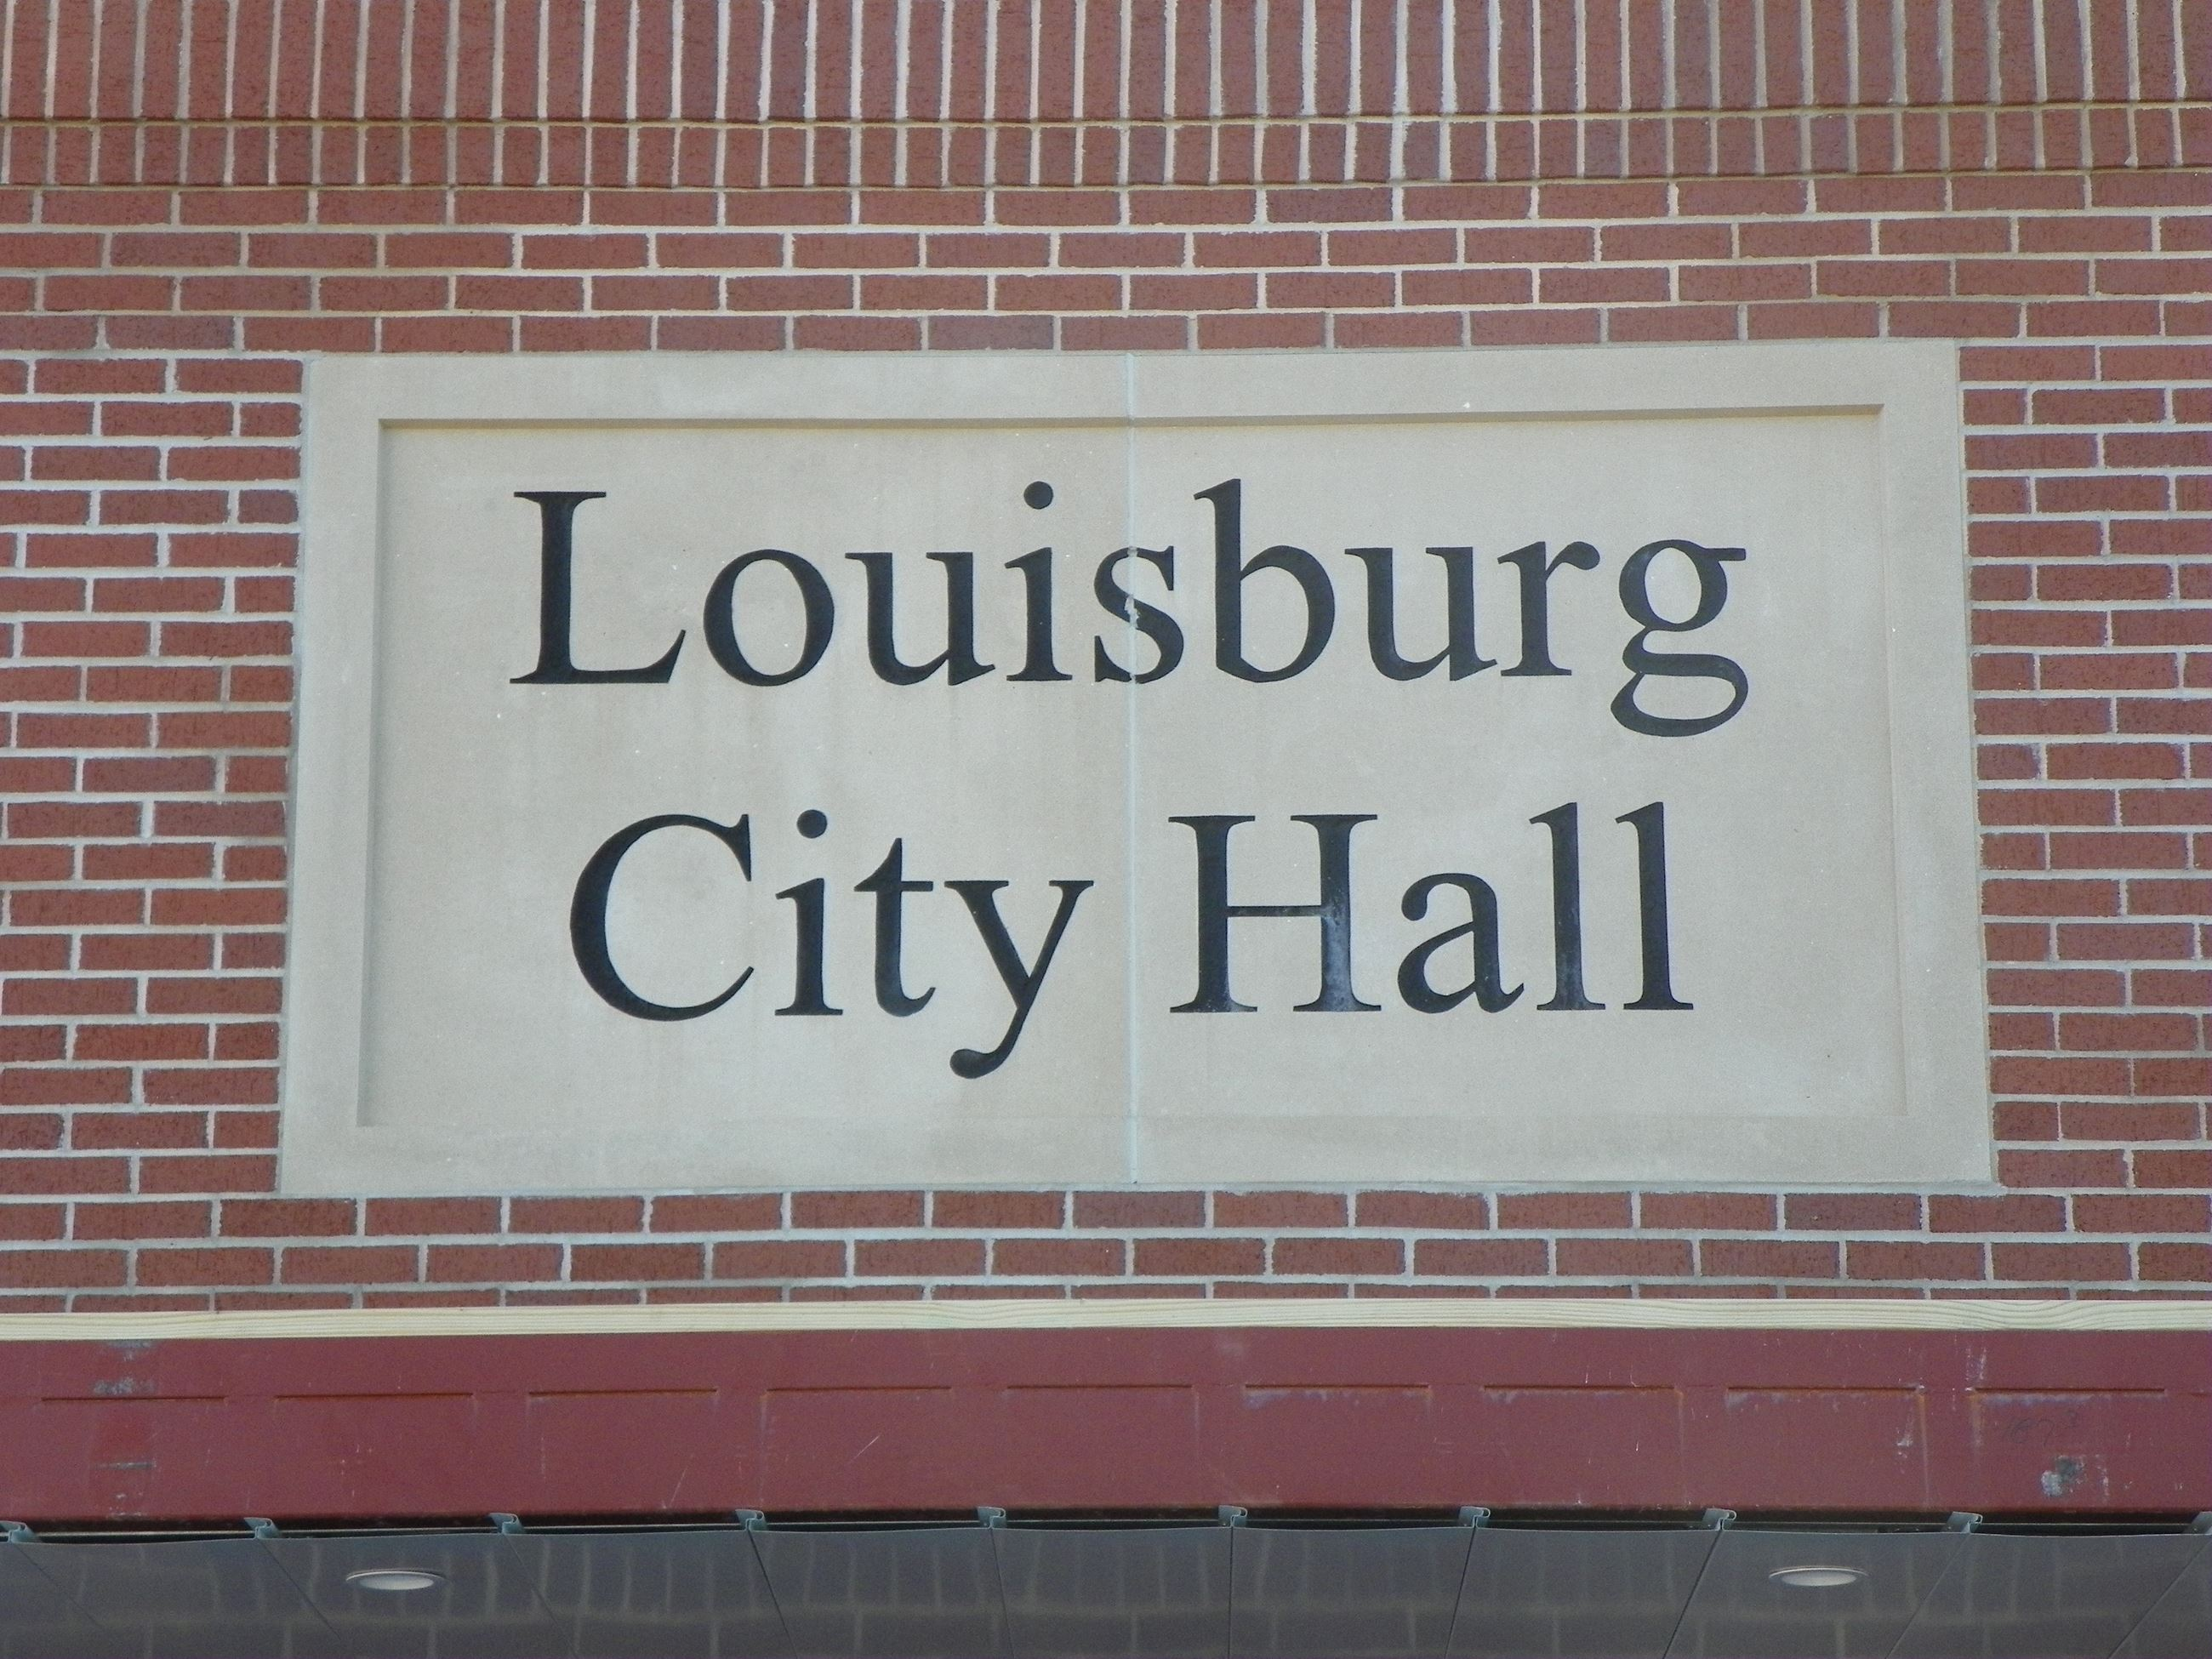 The City Hall nameplate